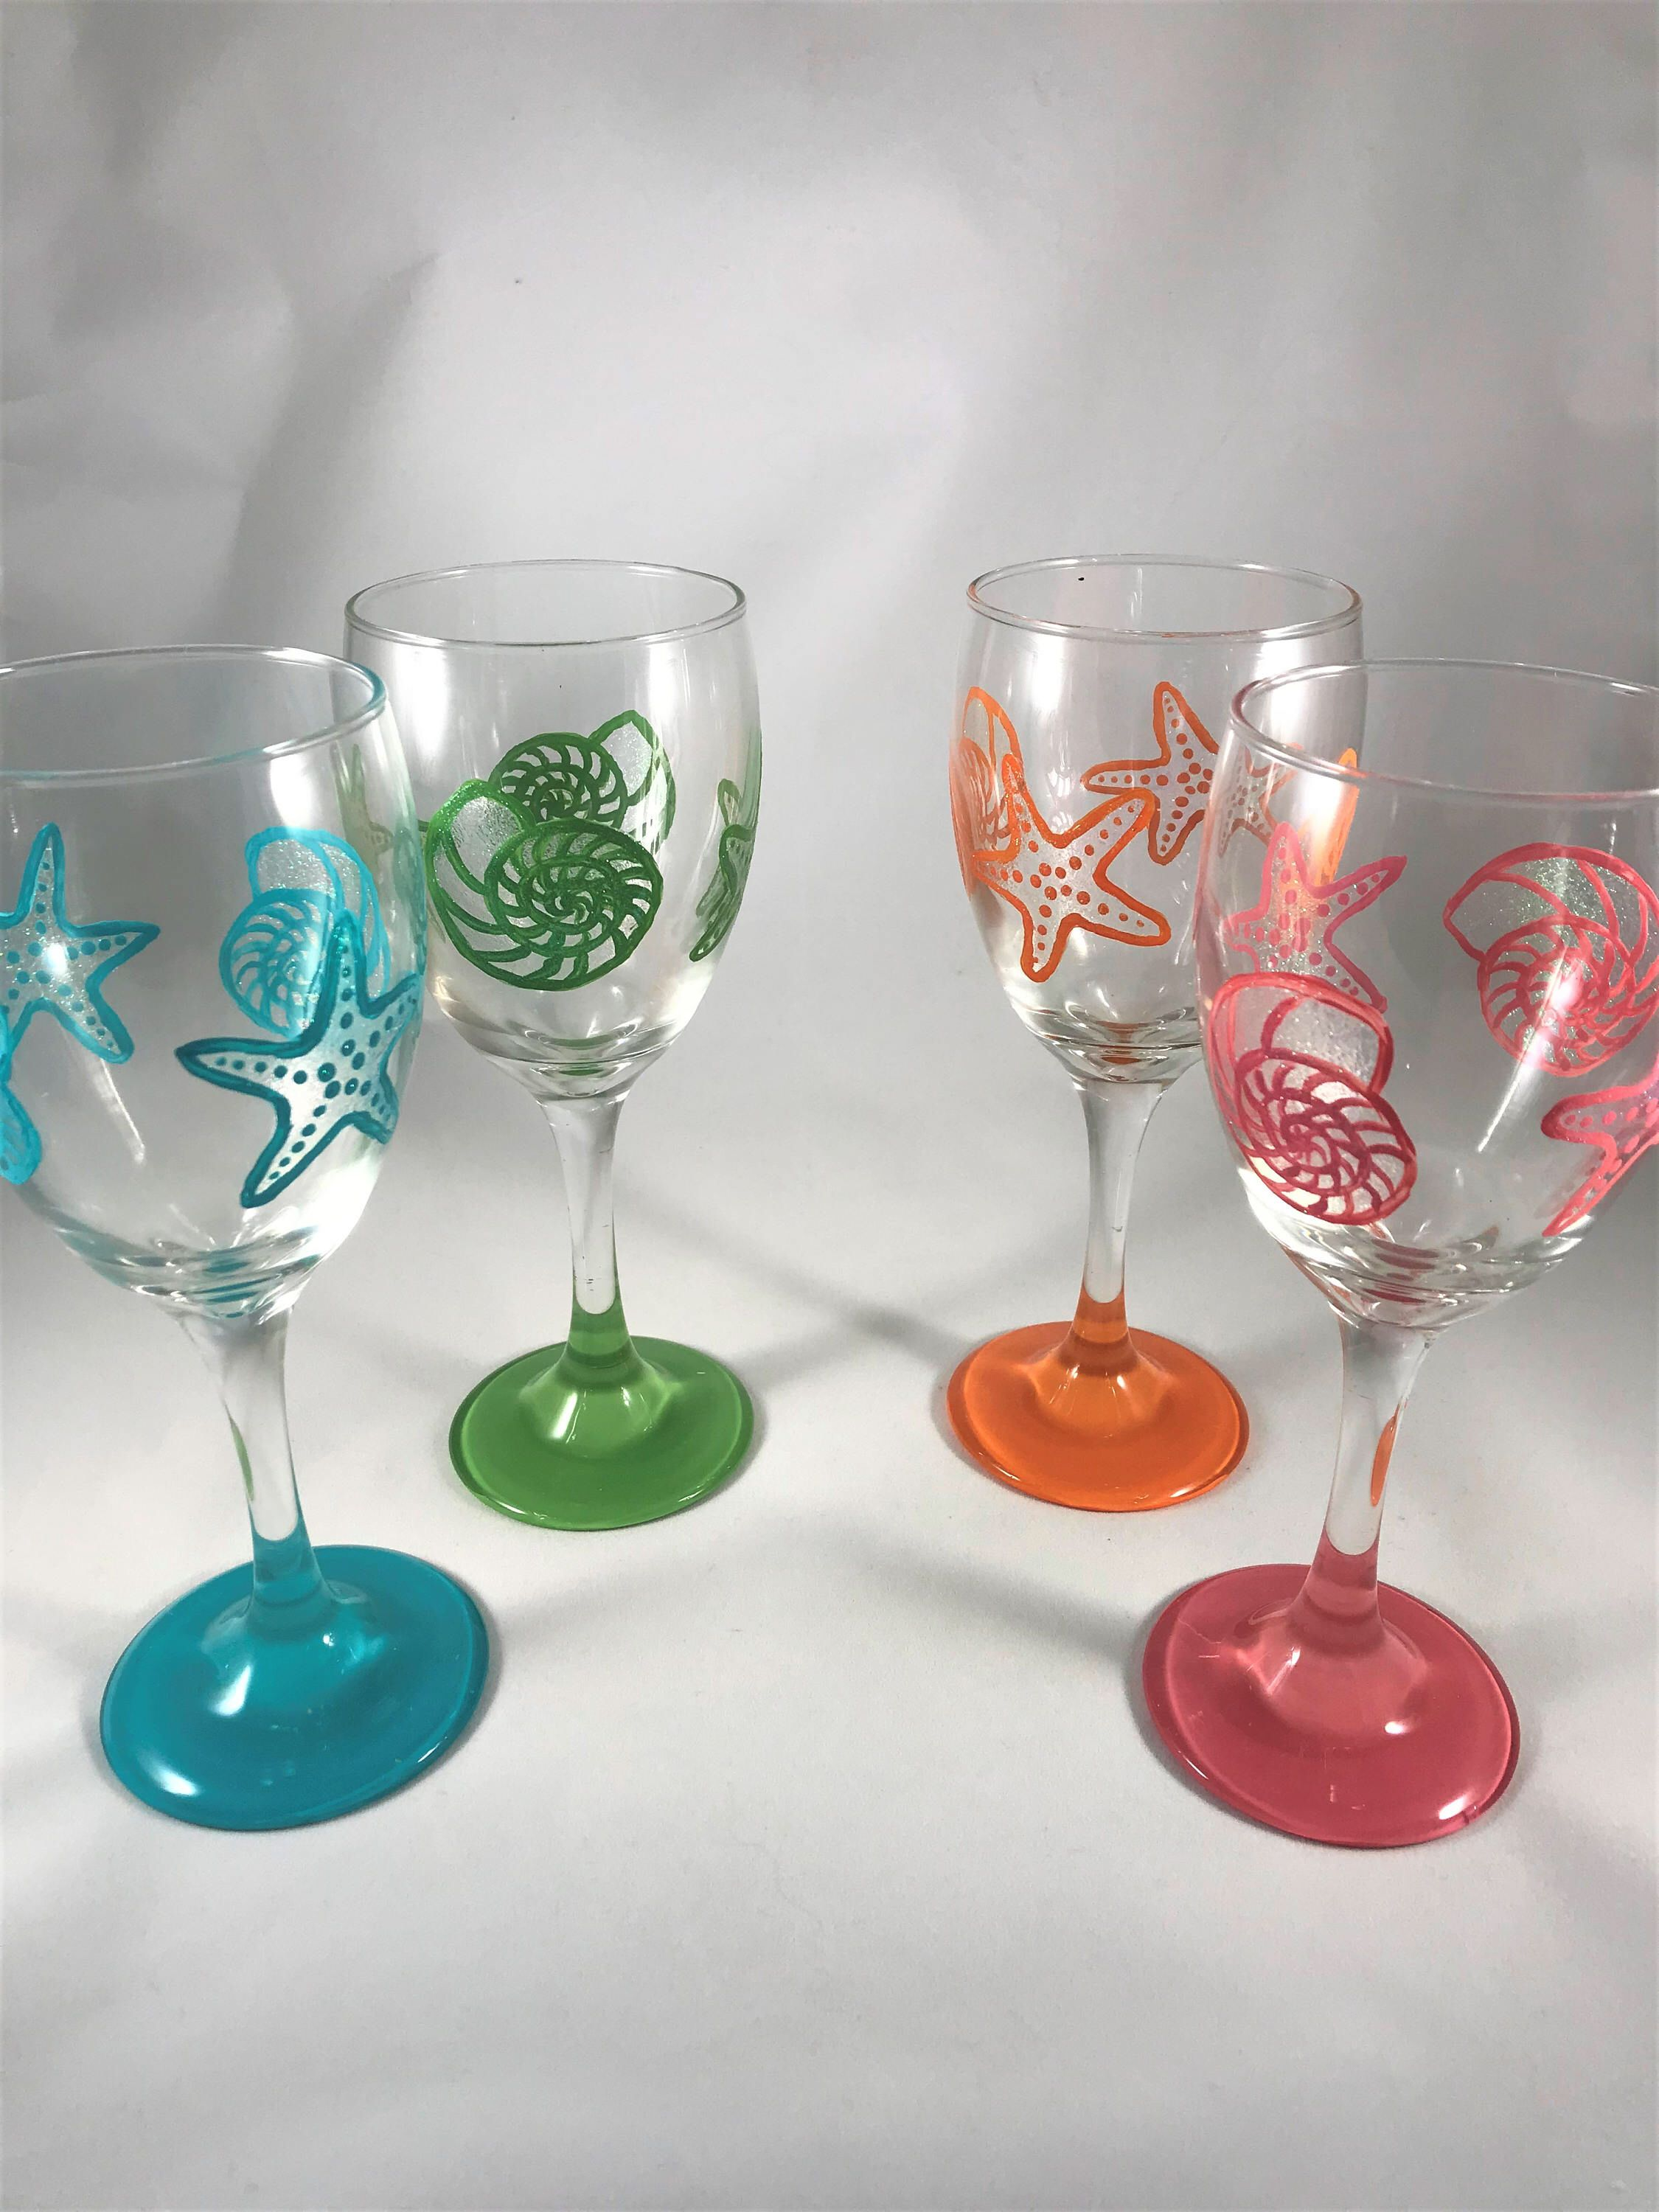 Inside Novelty Goblet Glass Glassware Red Wine Glasses Starfish Dolphin For Home